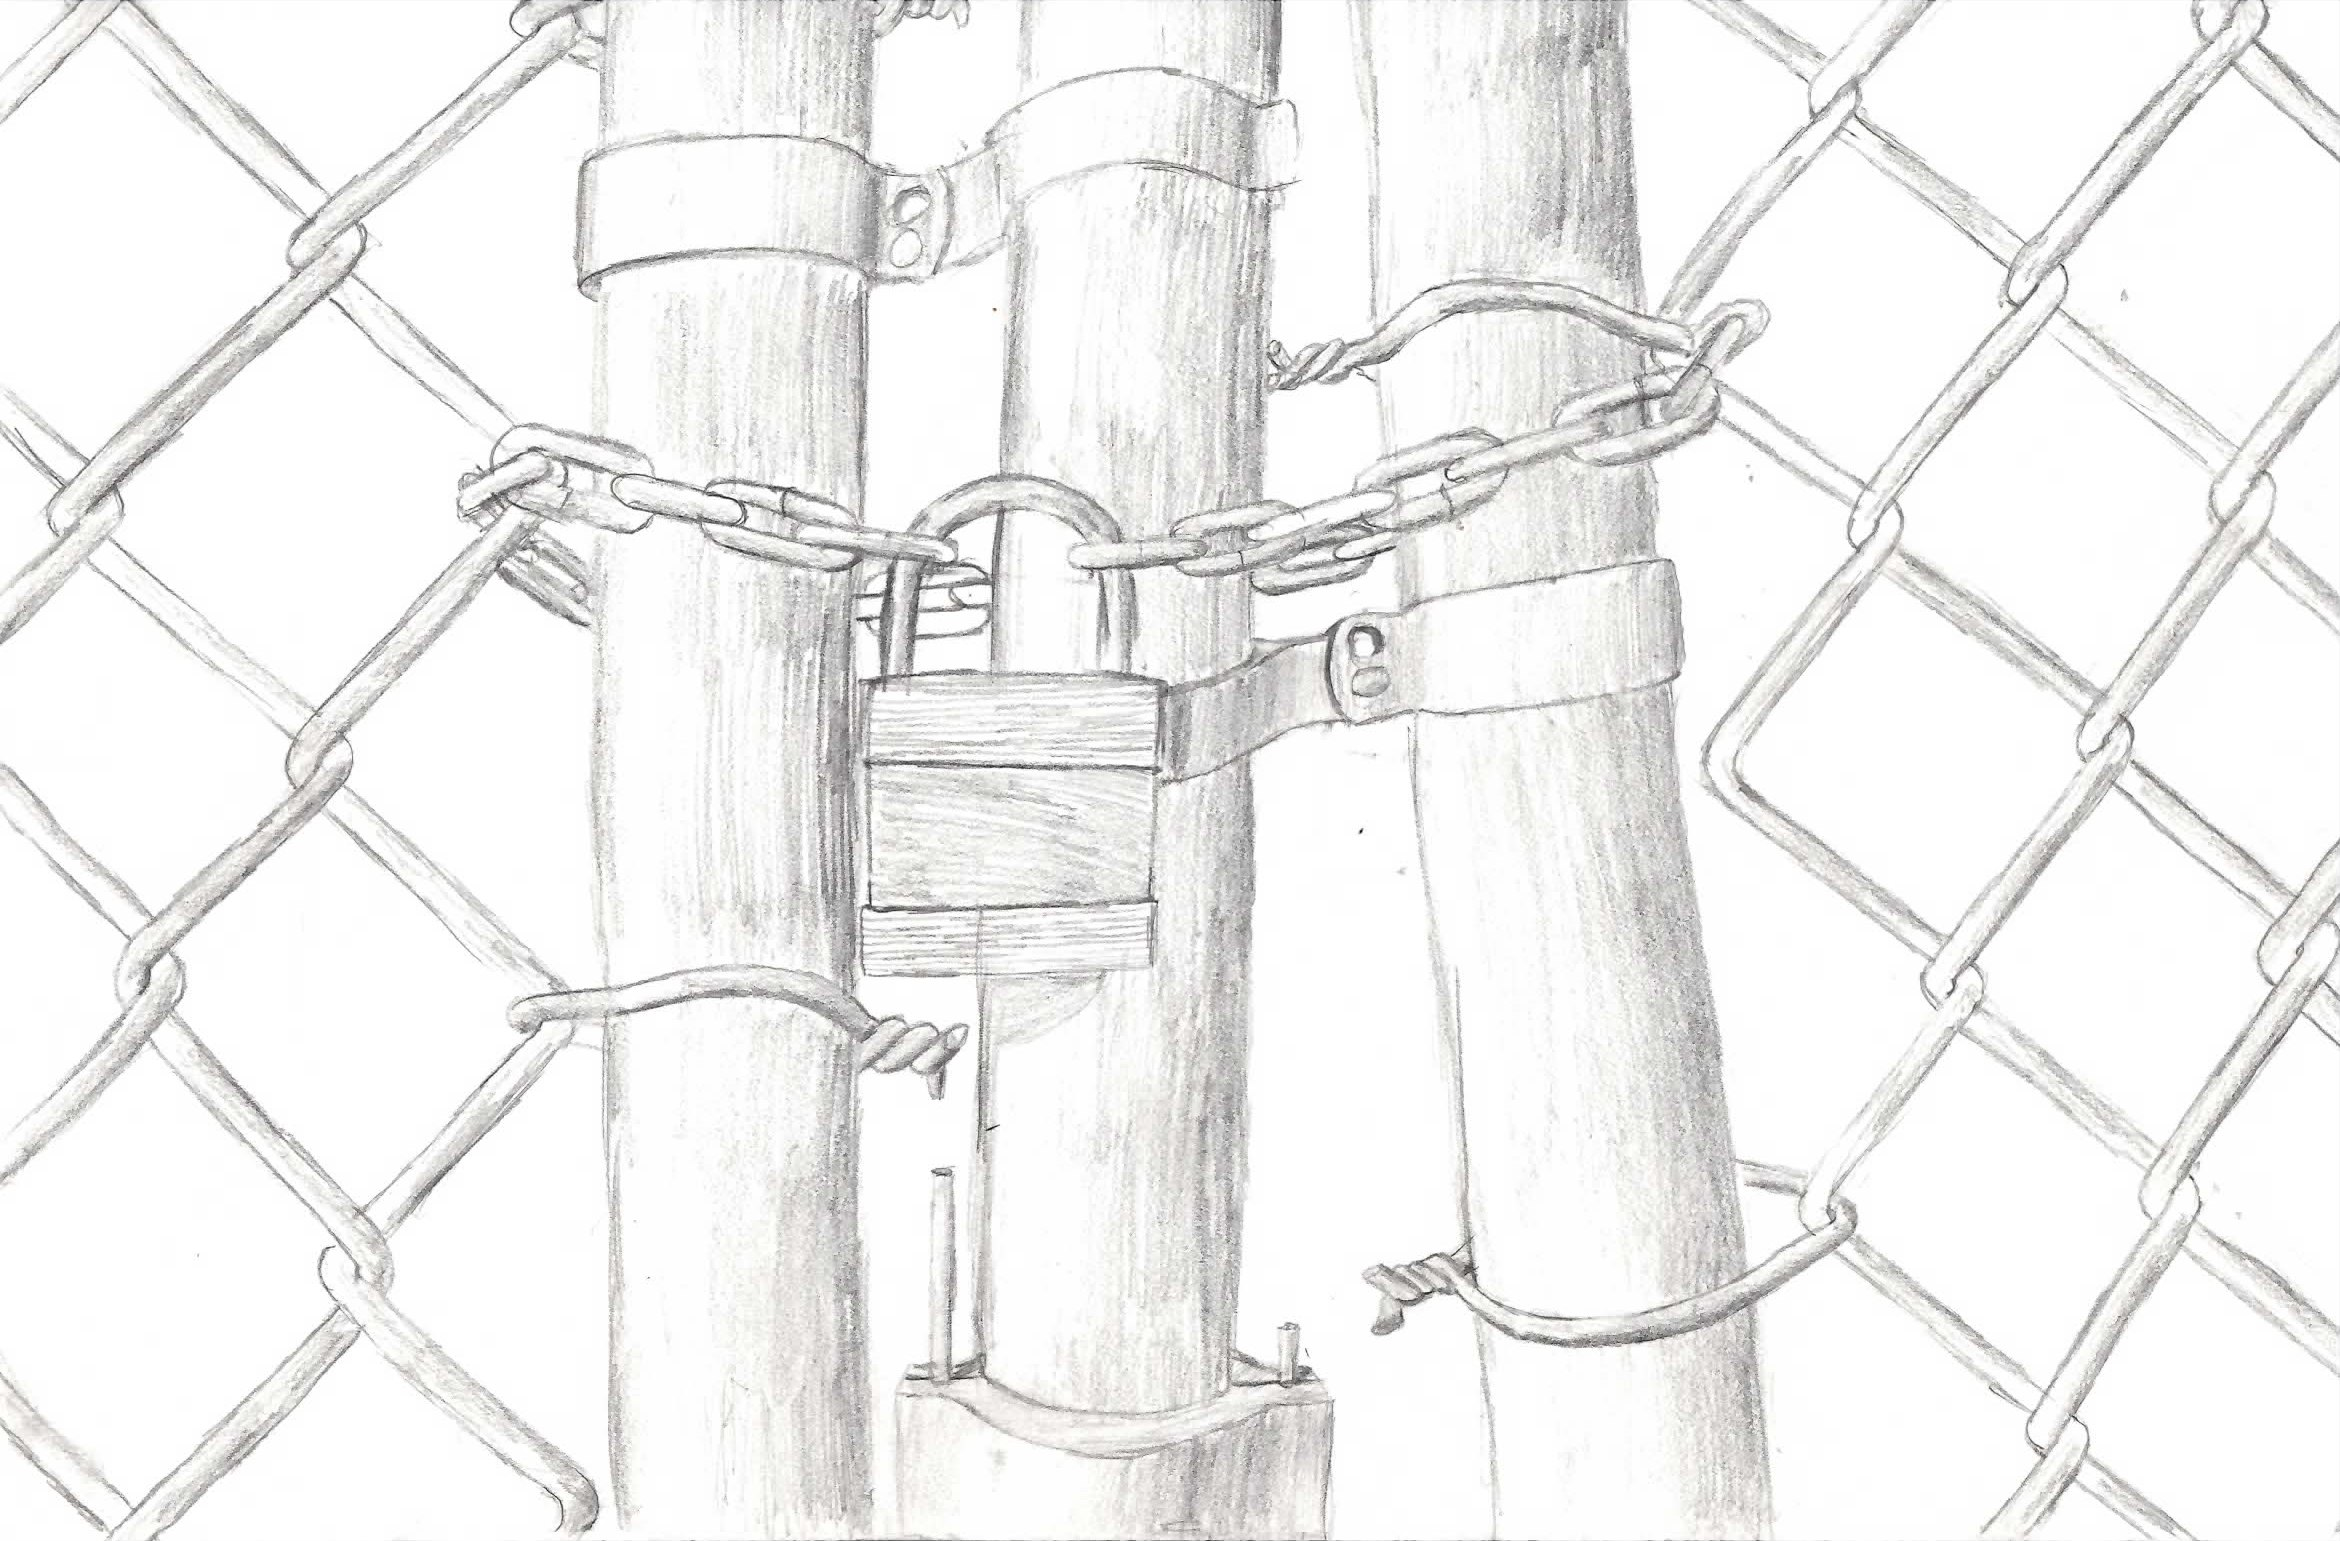 fence drawing. Chain-link Fence Gate By Bagnome Drawing